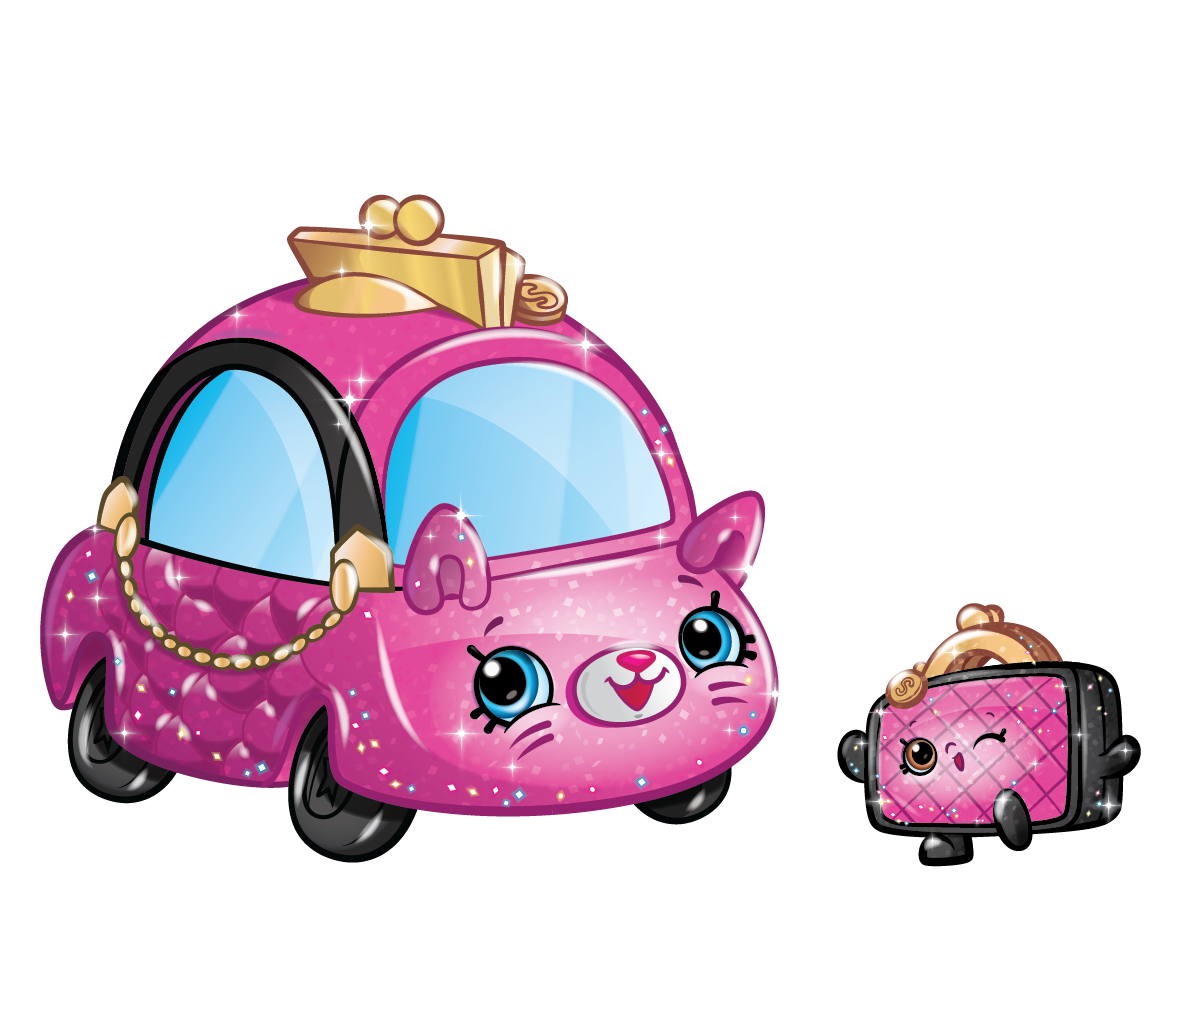 Car with luggage clipart clipart freeuse library Cutie Cars Characters - Meet Your Favourite Cutie Cars Characters clipart freeuse library